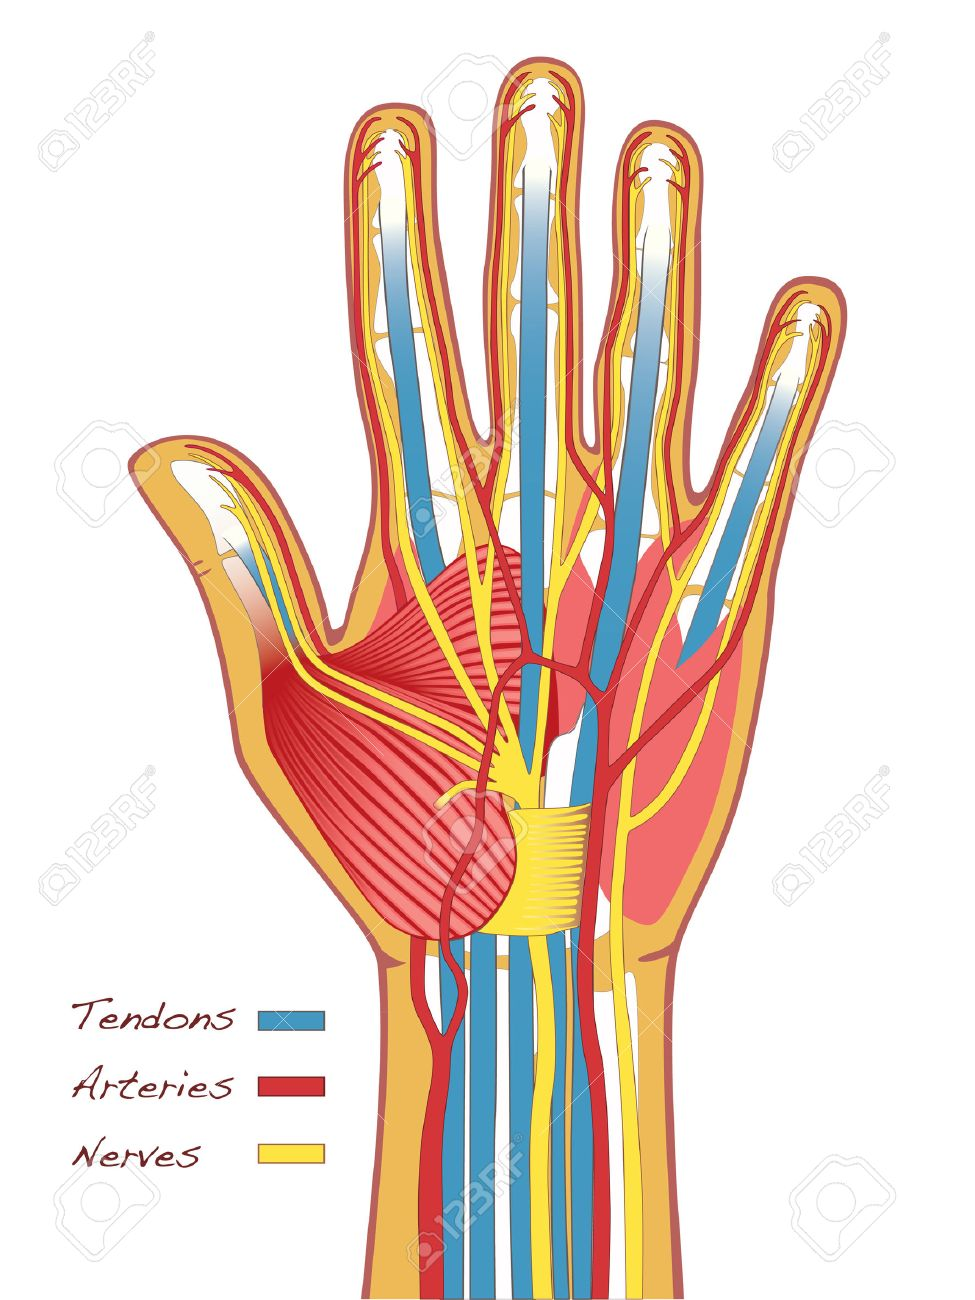 hand nerves diagram submersible pump control box wiring for 3 wire single phase the human hands anatomy with tendons arteries and royalty stock vector 37208381